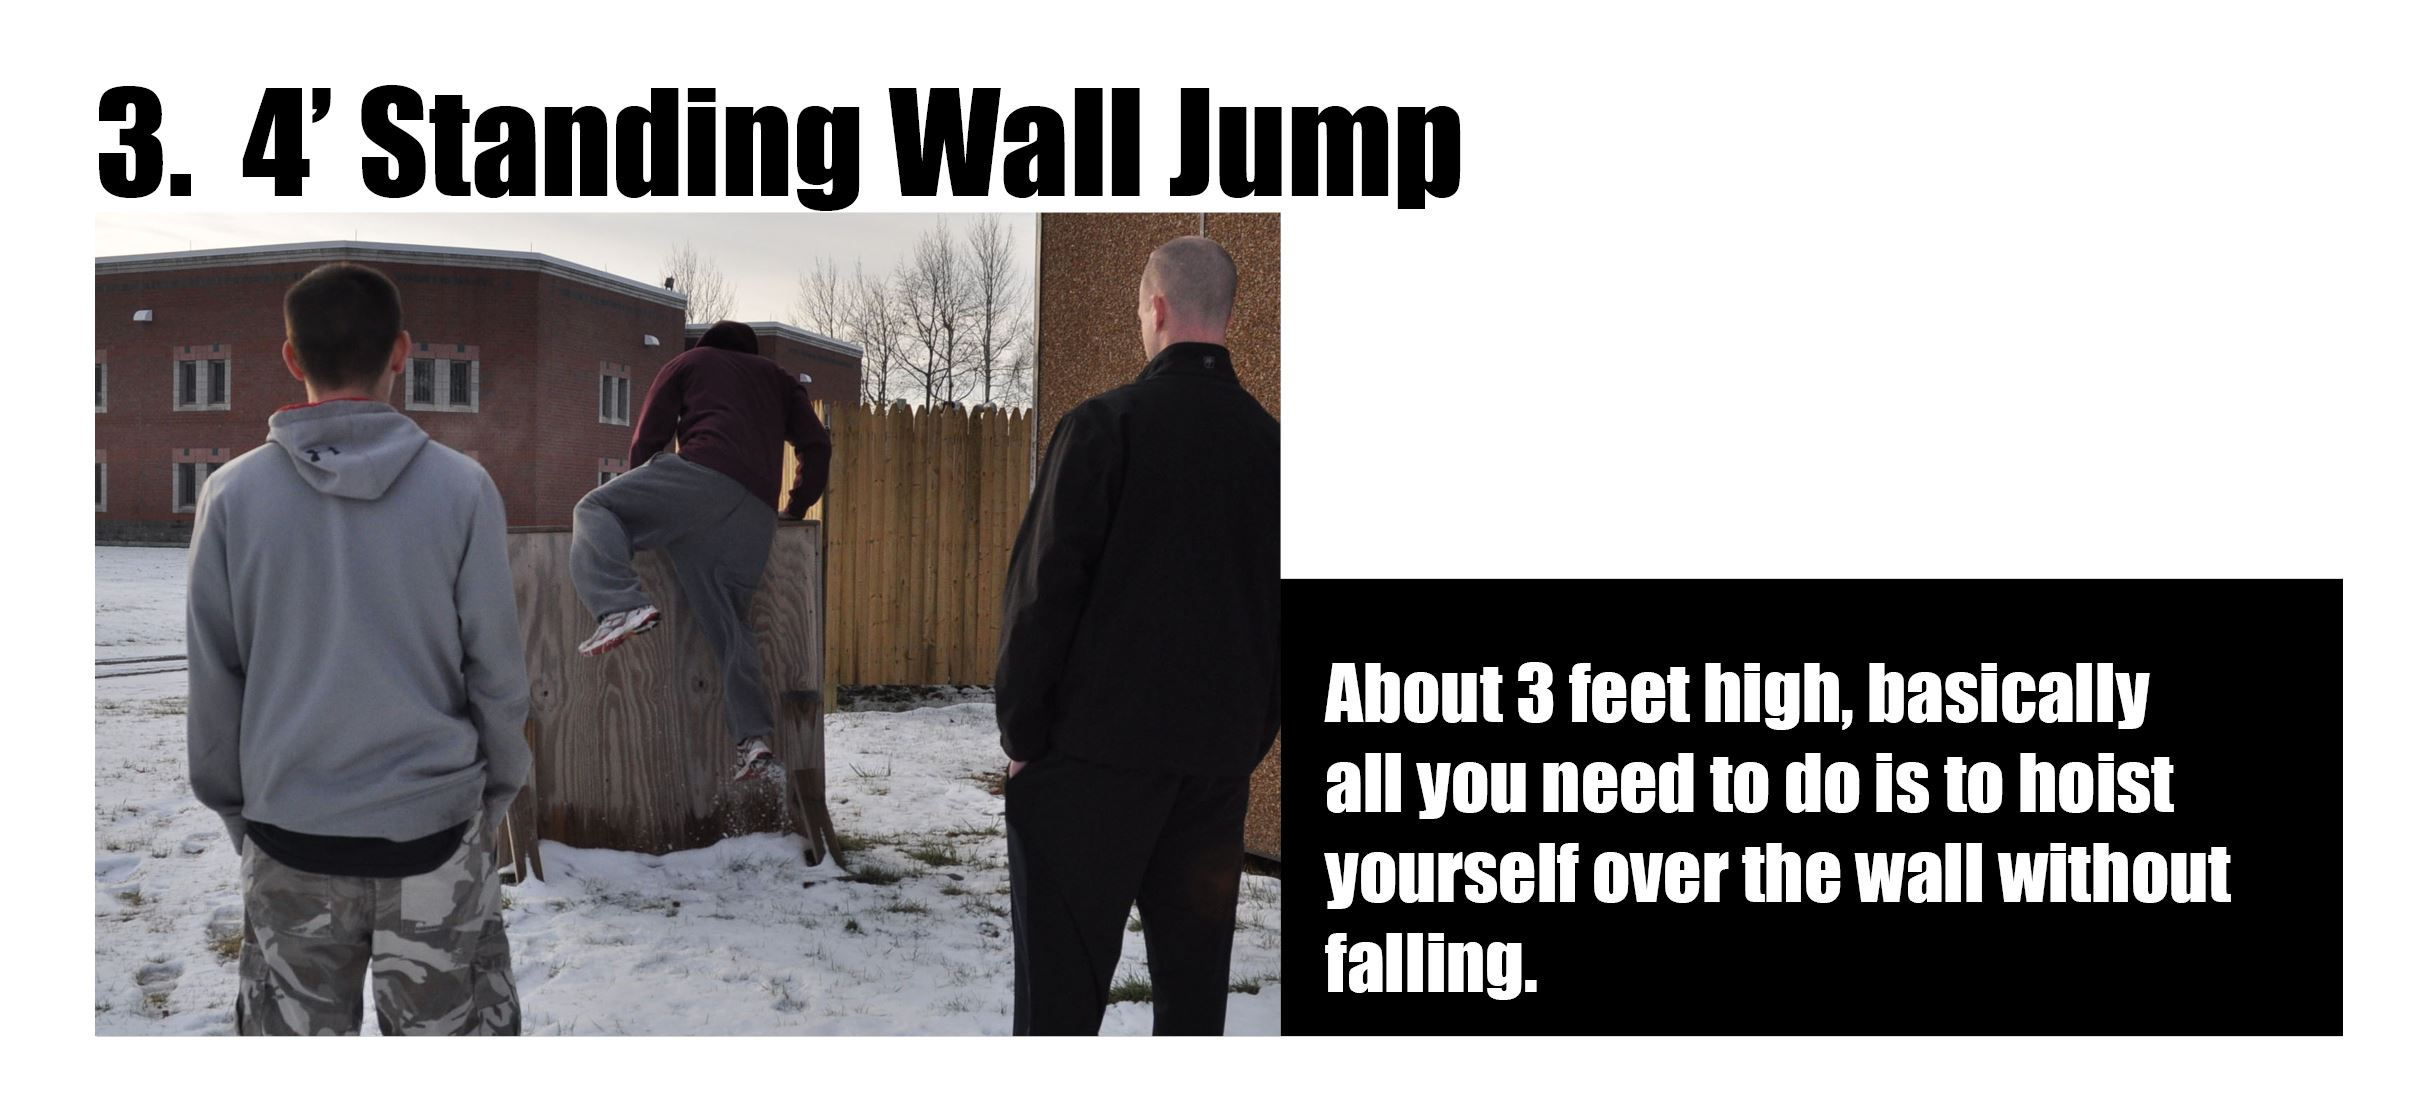 Man Attempting Standing Wall Jump